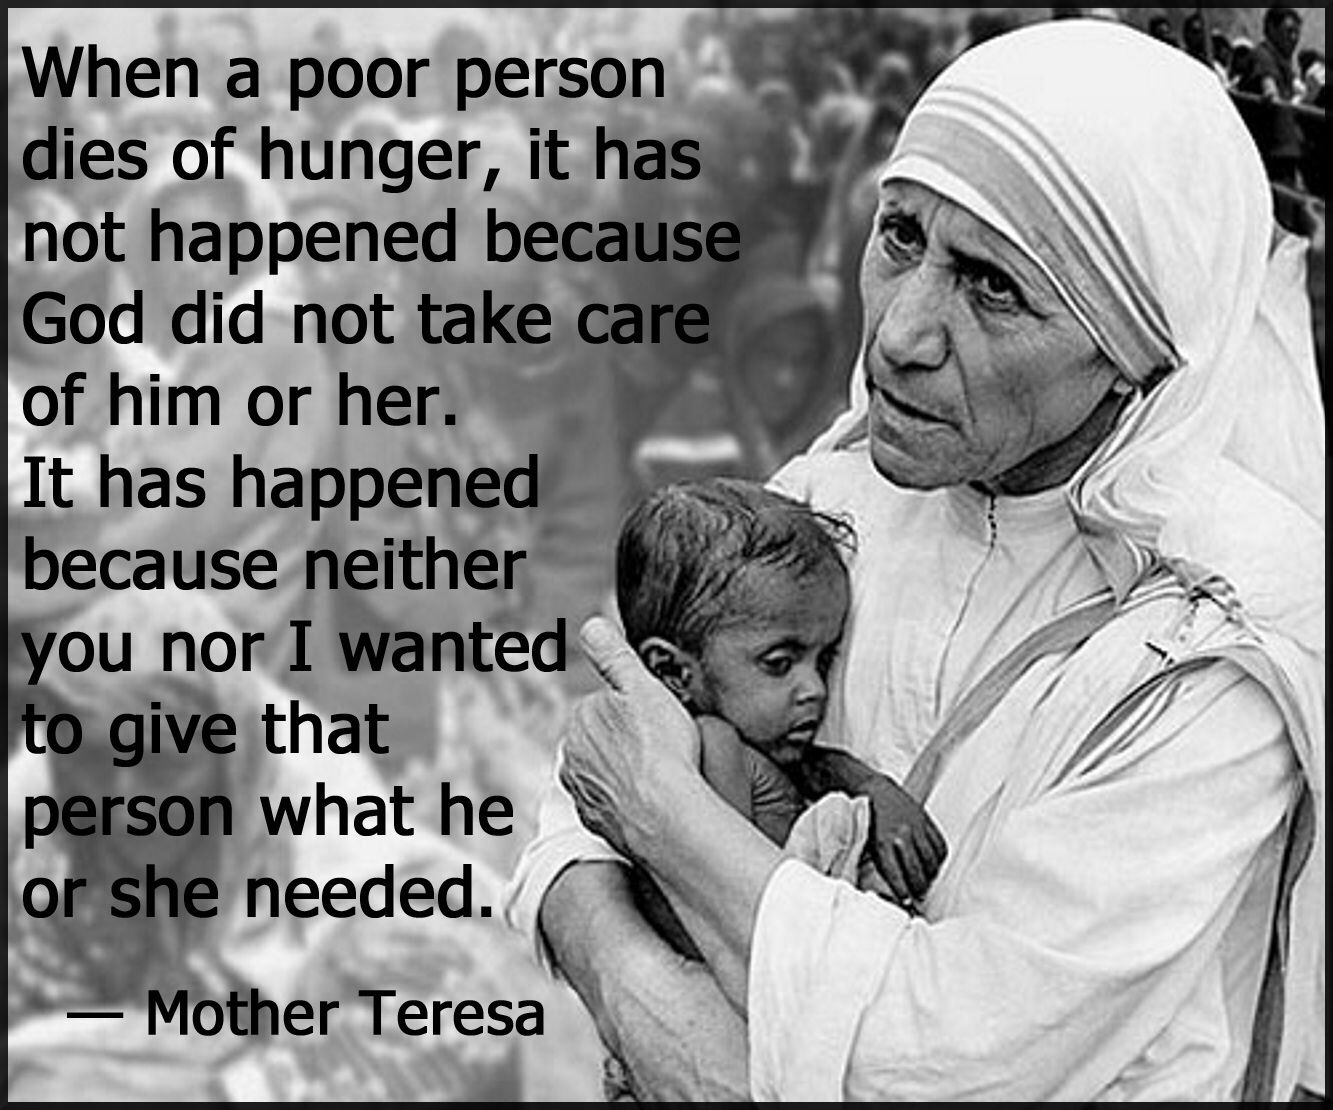 This Is A Hard Truth Mother Teresa Quotes True Self Mother